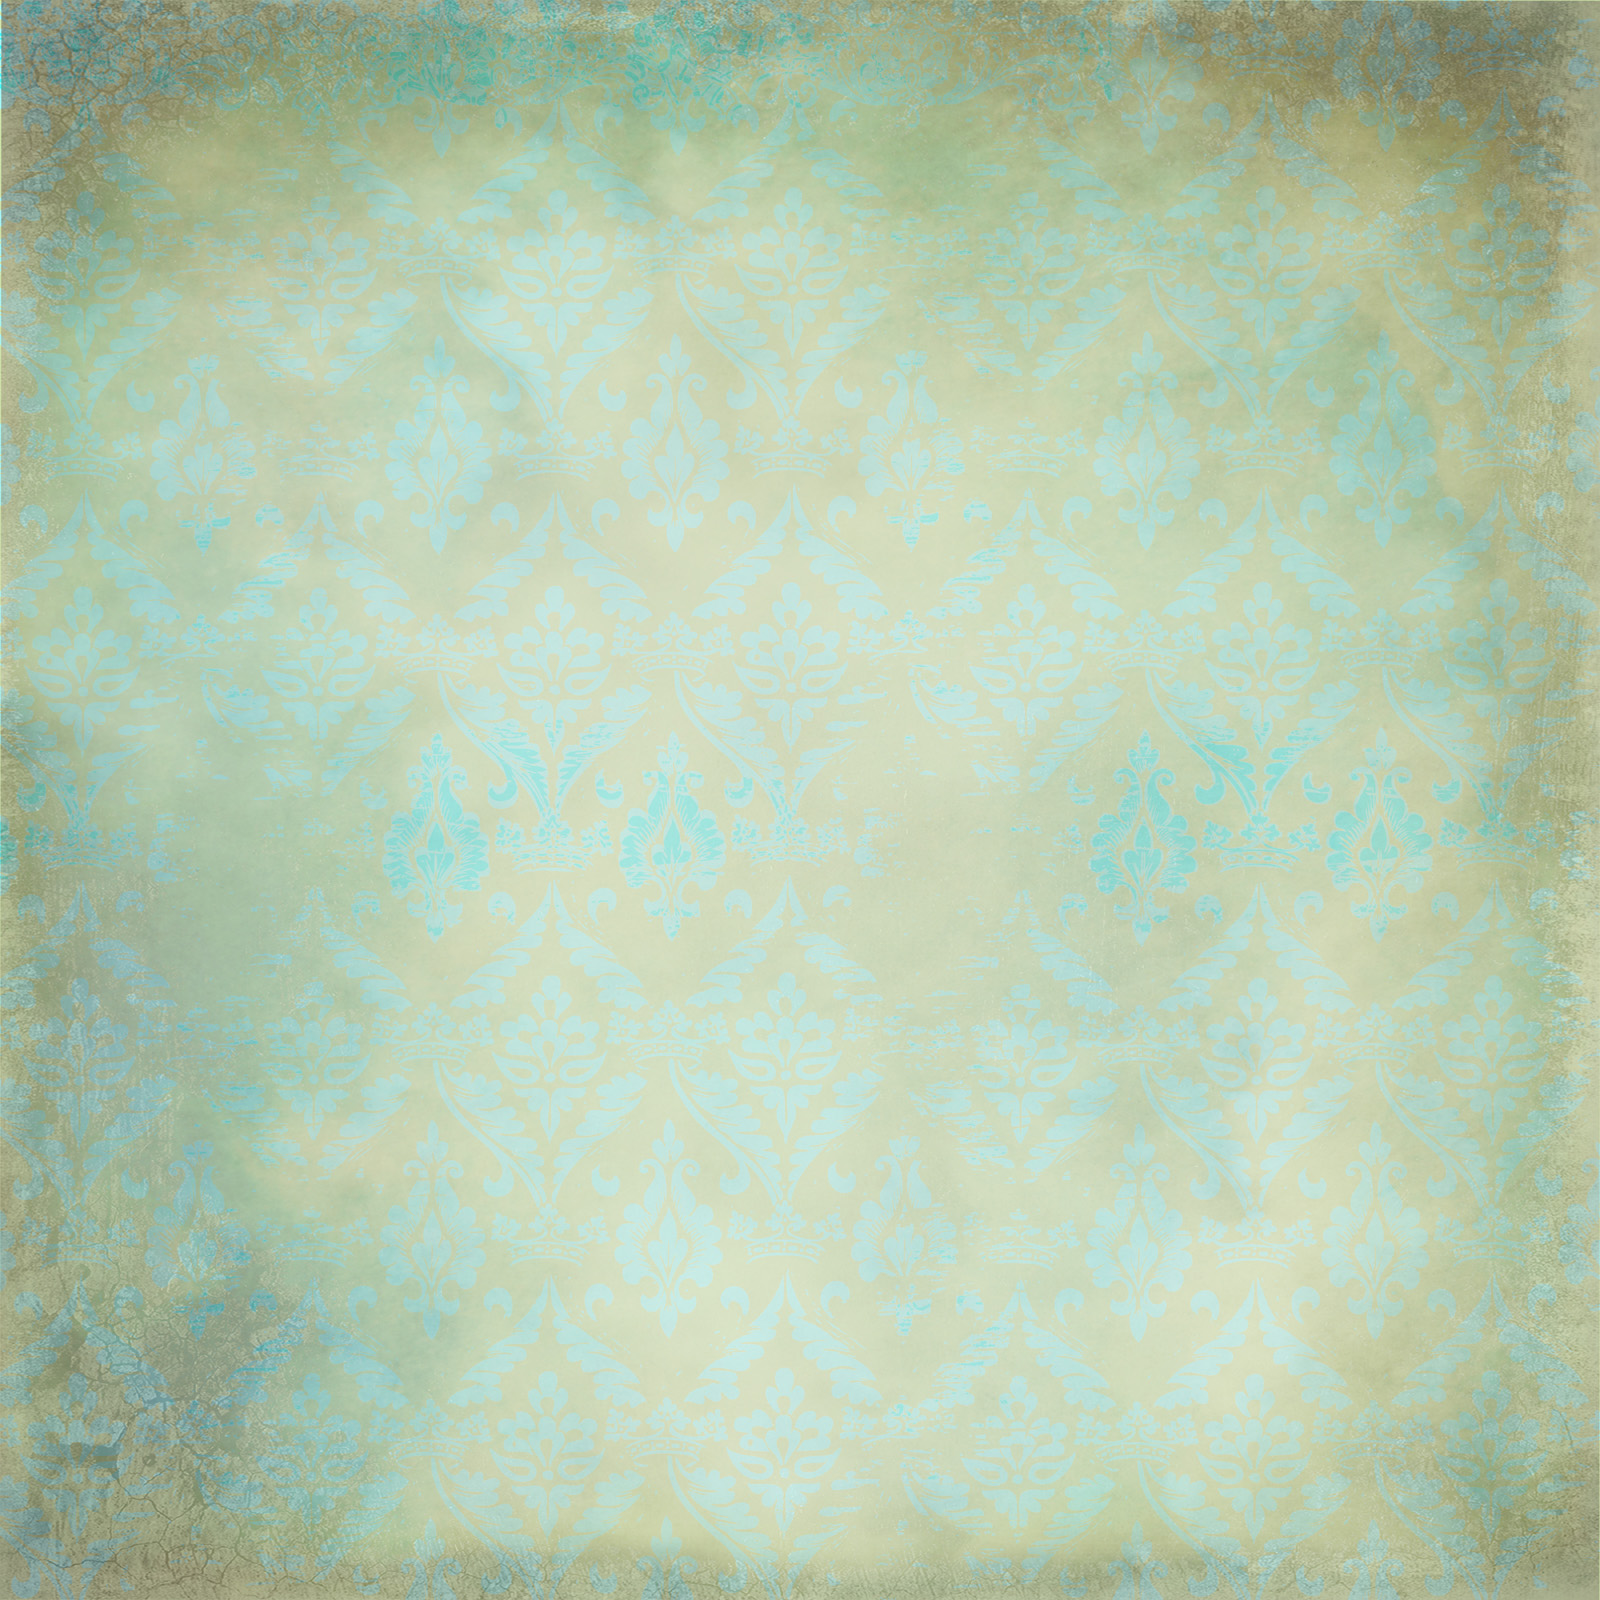 Retro styles patterns background 51739